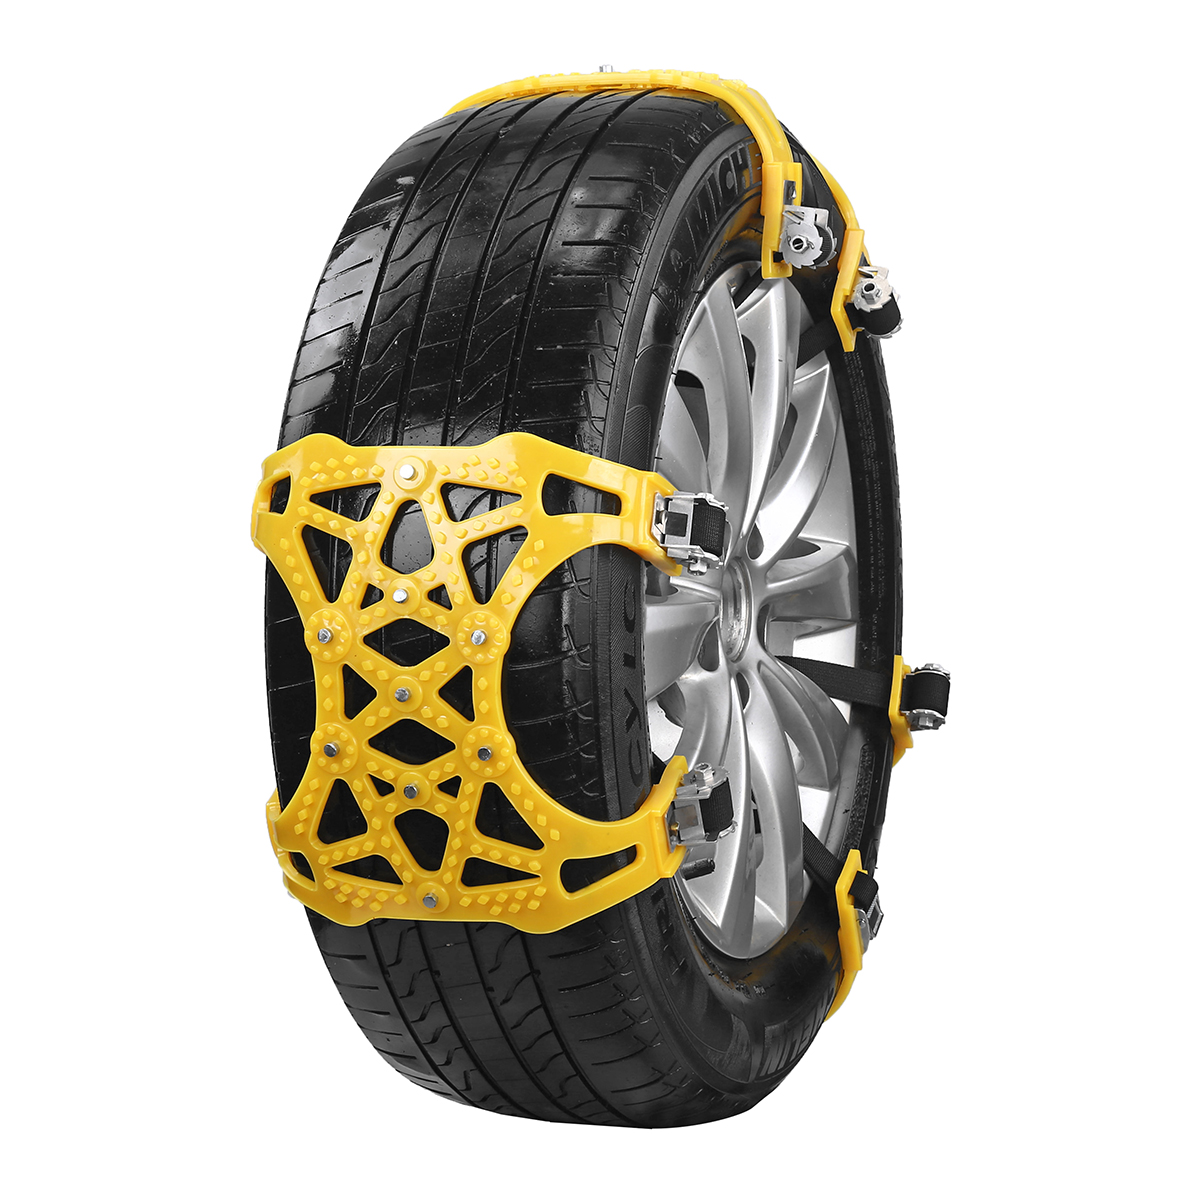 Anti Slip Universal Car Truck SUV Tire Width 165-275 Emergency S